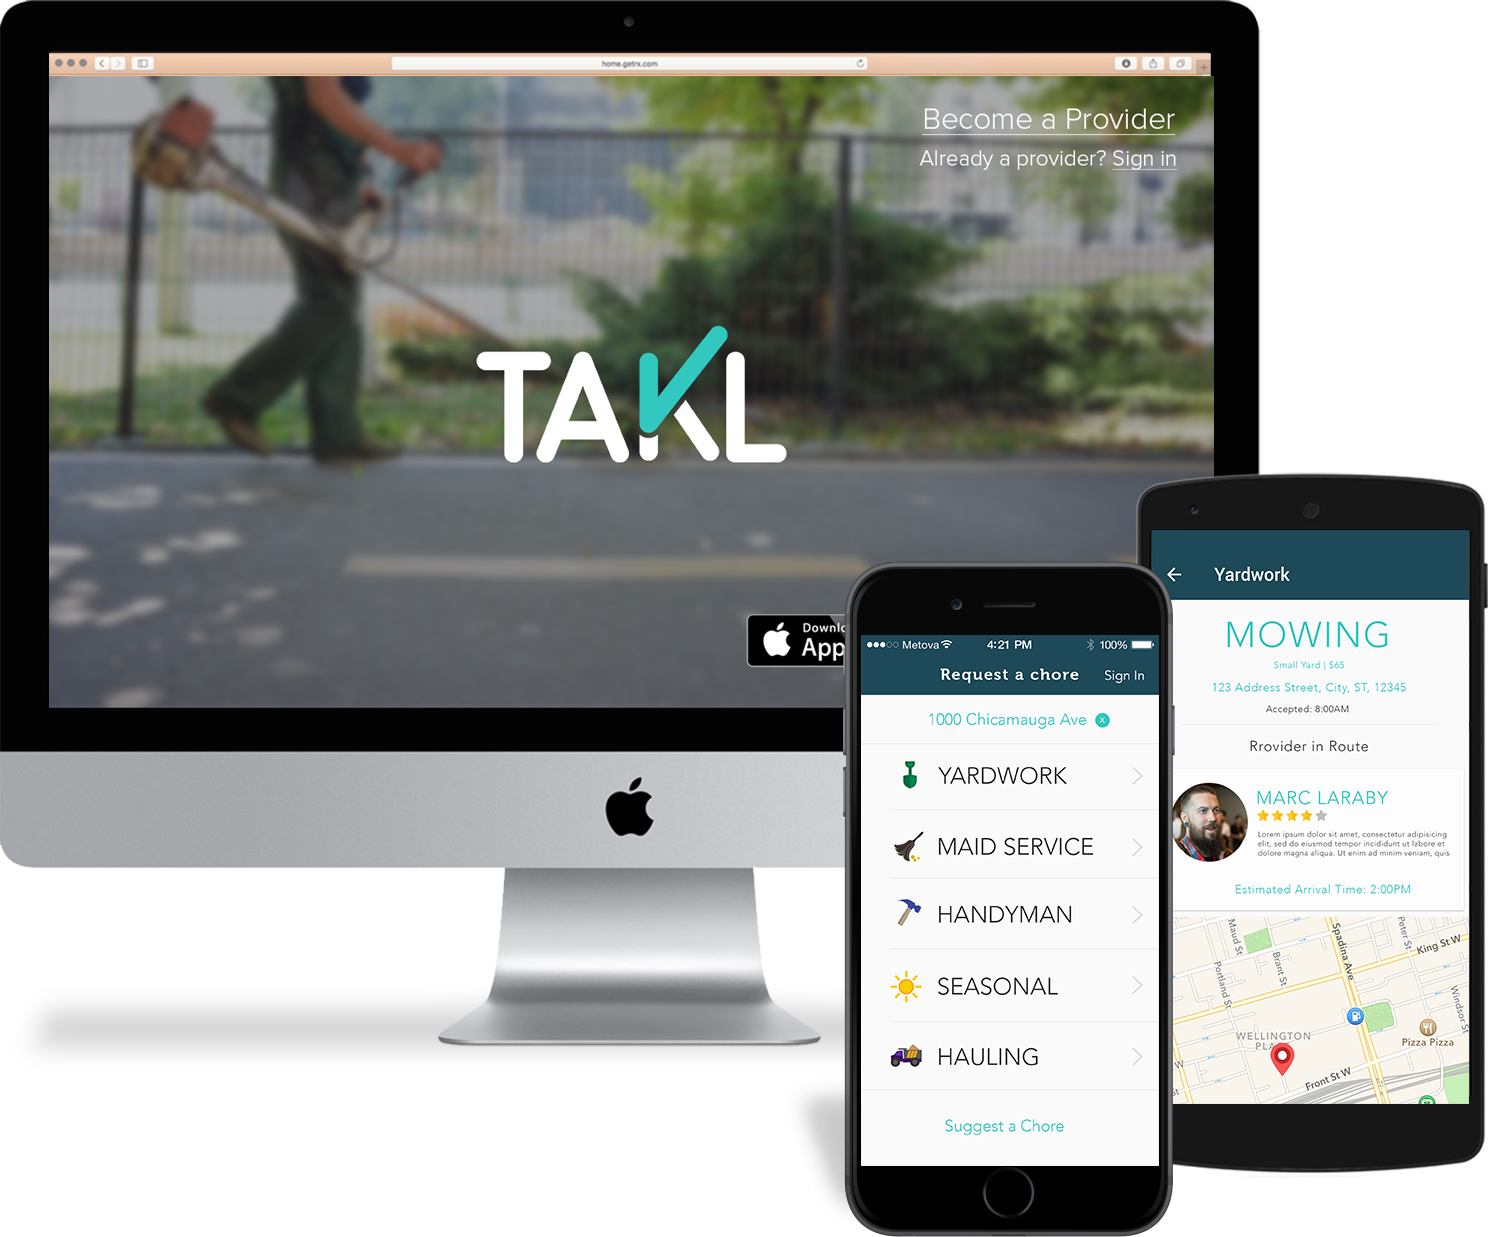 Takl website, ios app, and android app